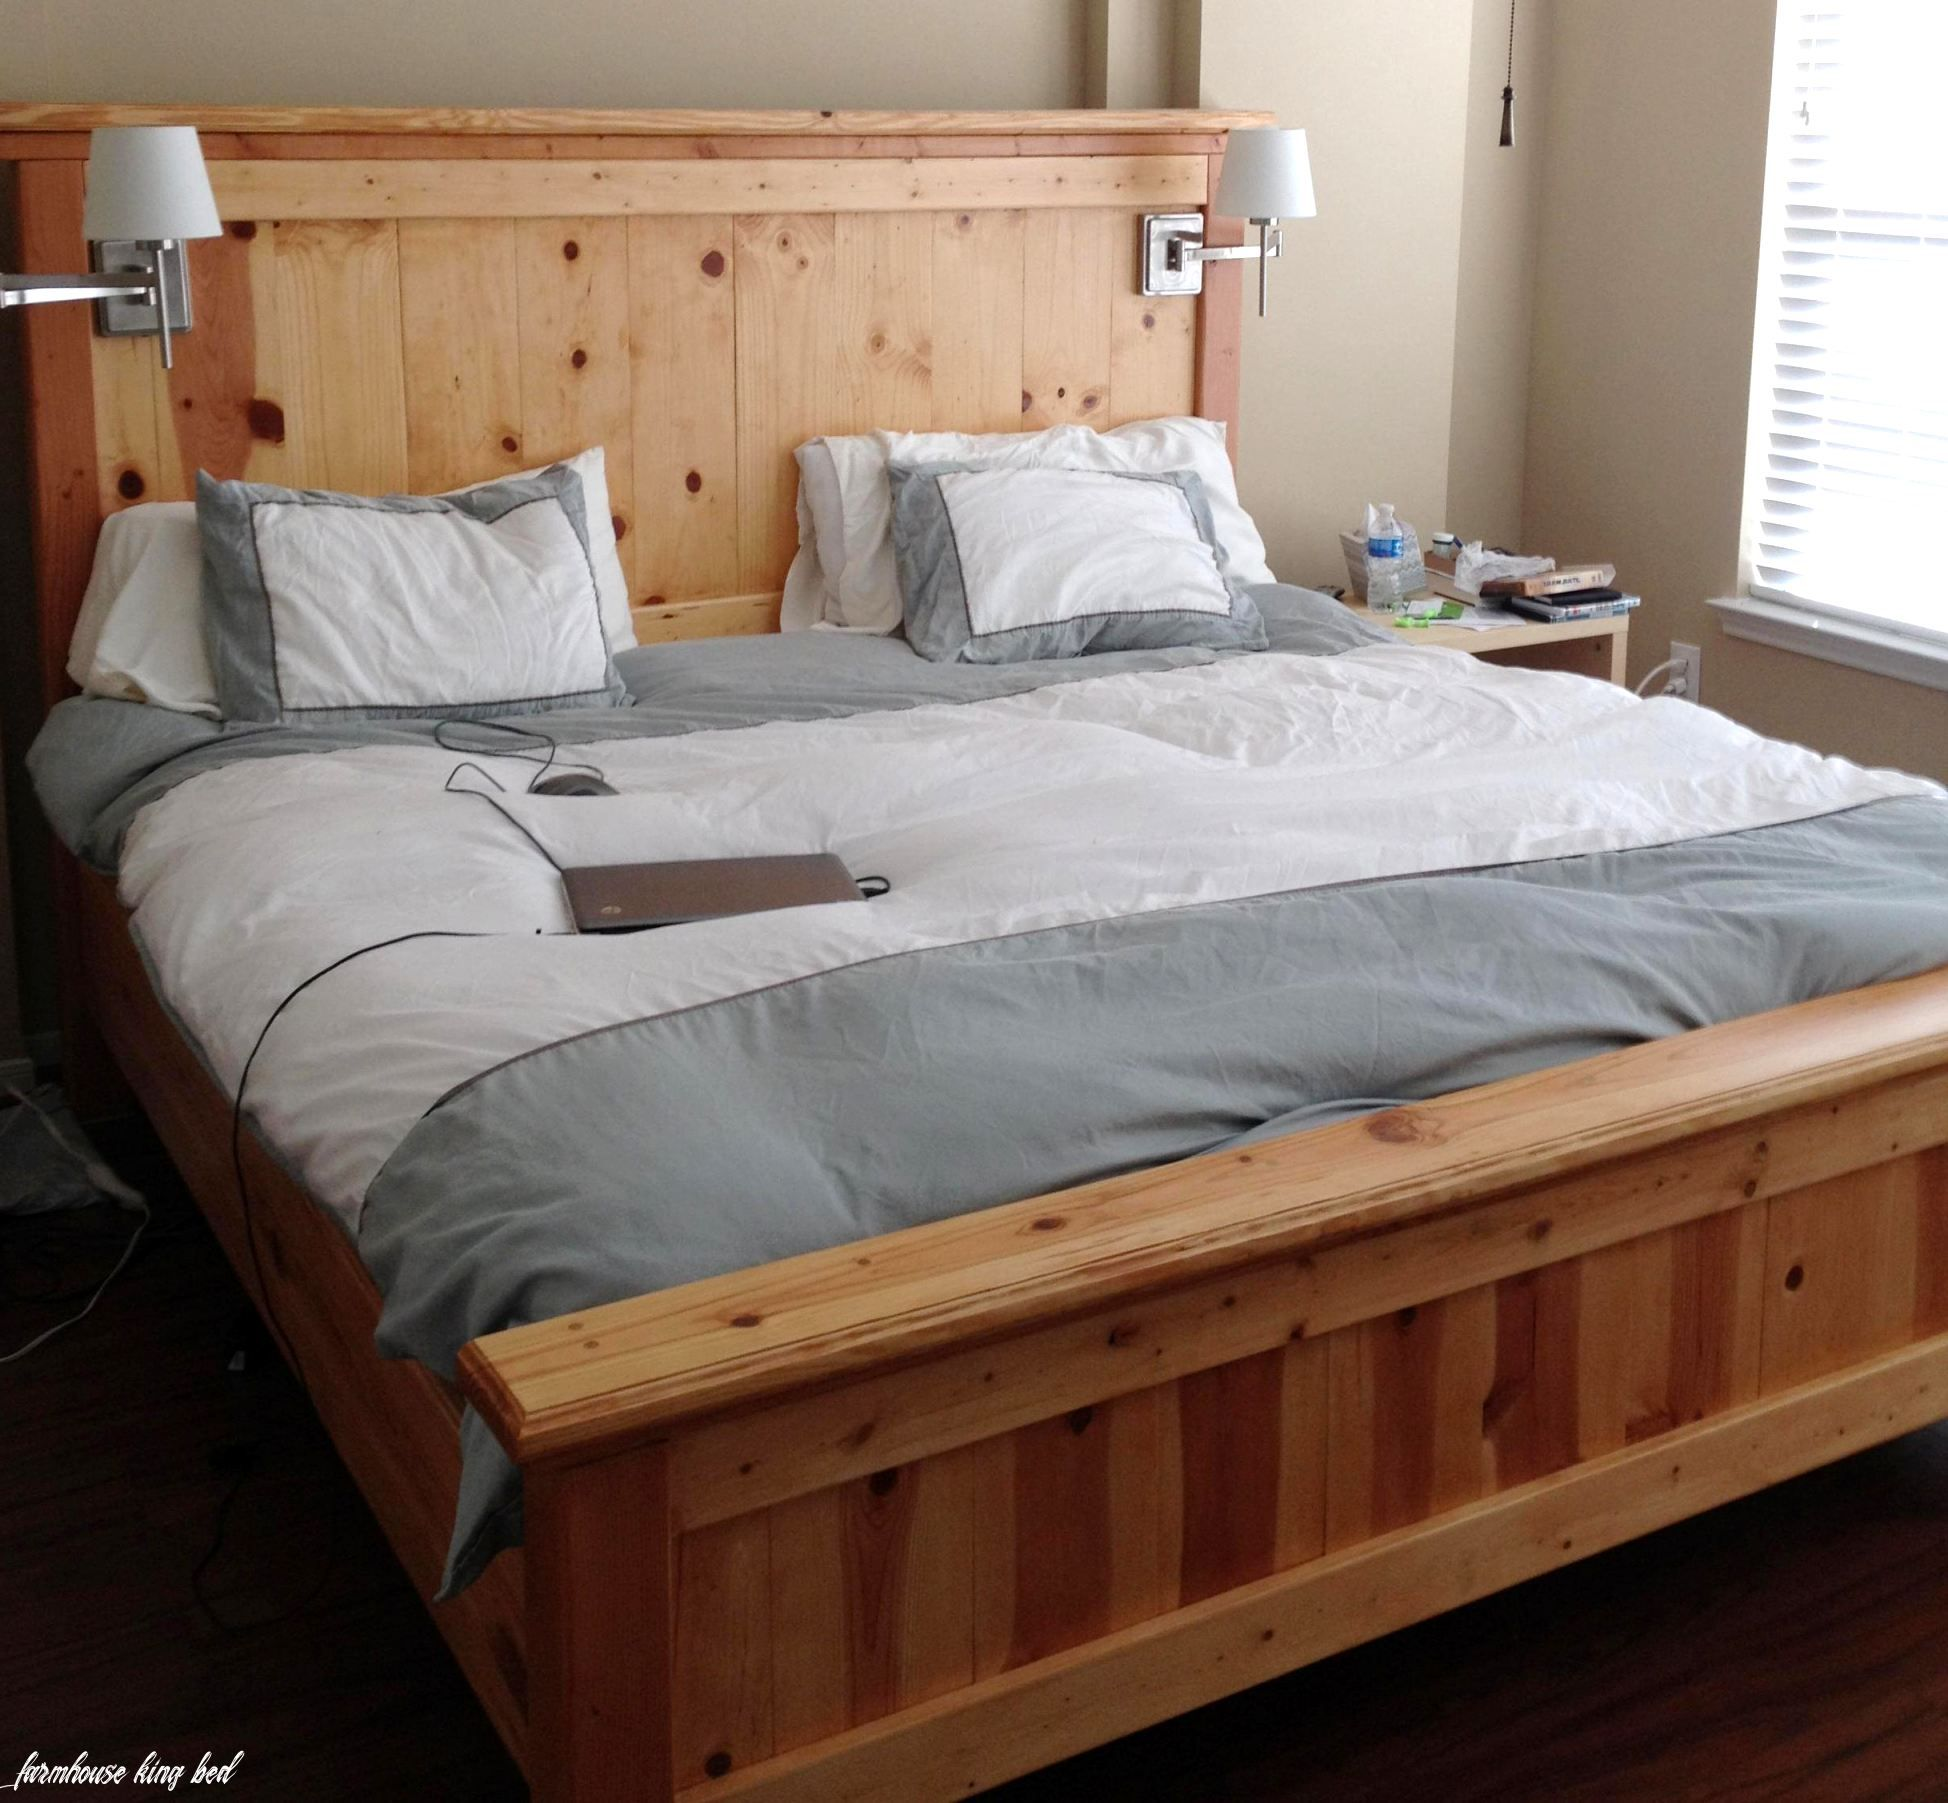 Best Farmhouse King Bed To Inspire You Bedroom California King Bed Frame King Bed Frame Headboards For Beds